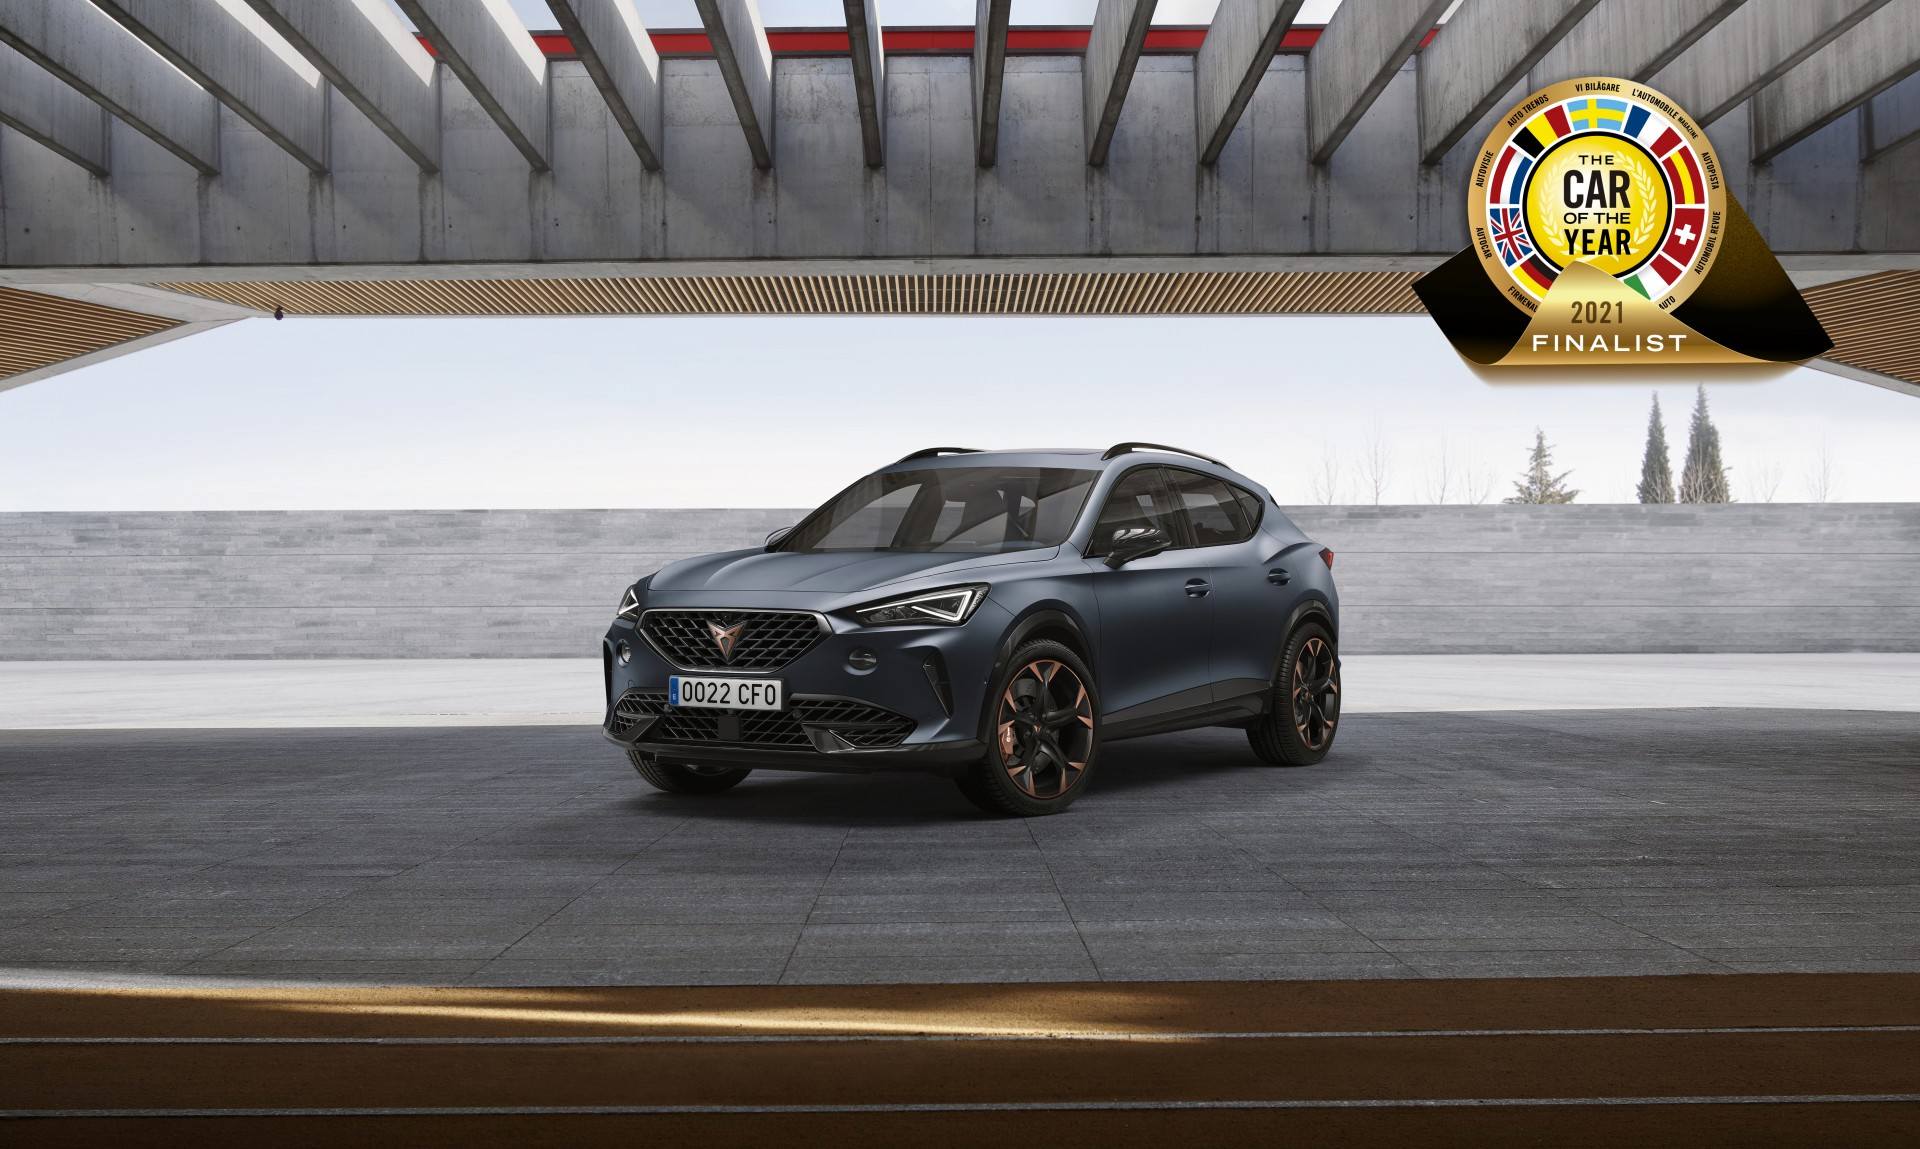 The-CUPRA-Formentor-nominated-as-one-of-the-seven-finalists-for-prestigious-Car-of-the-Year-2021-award-_01_HQ